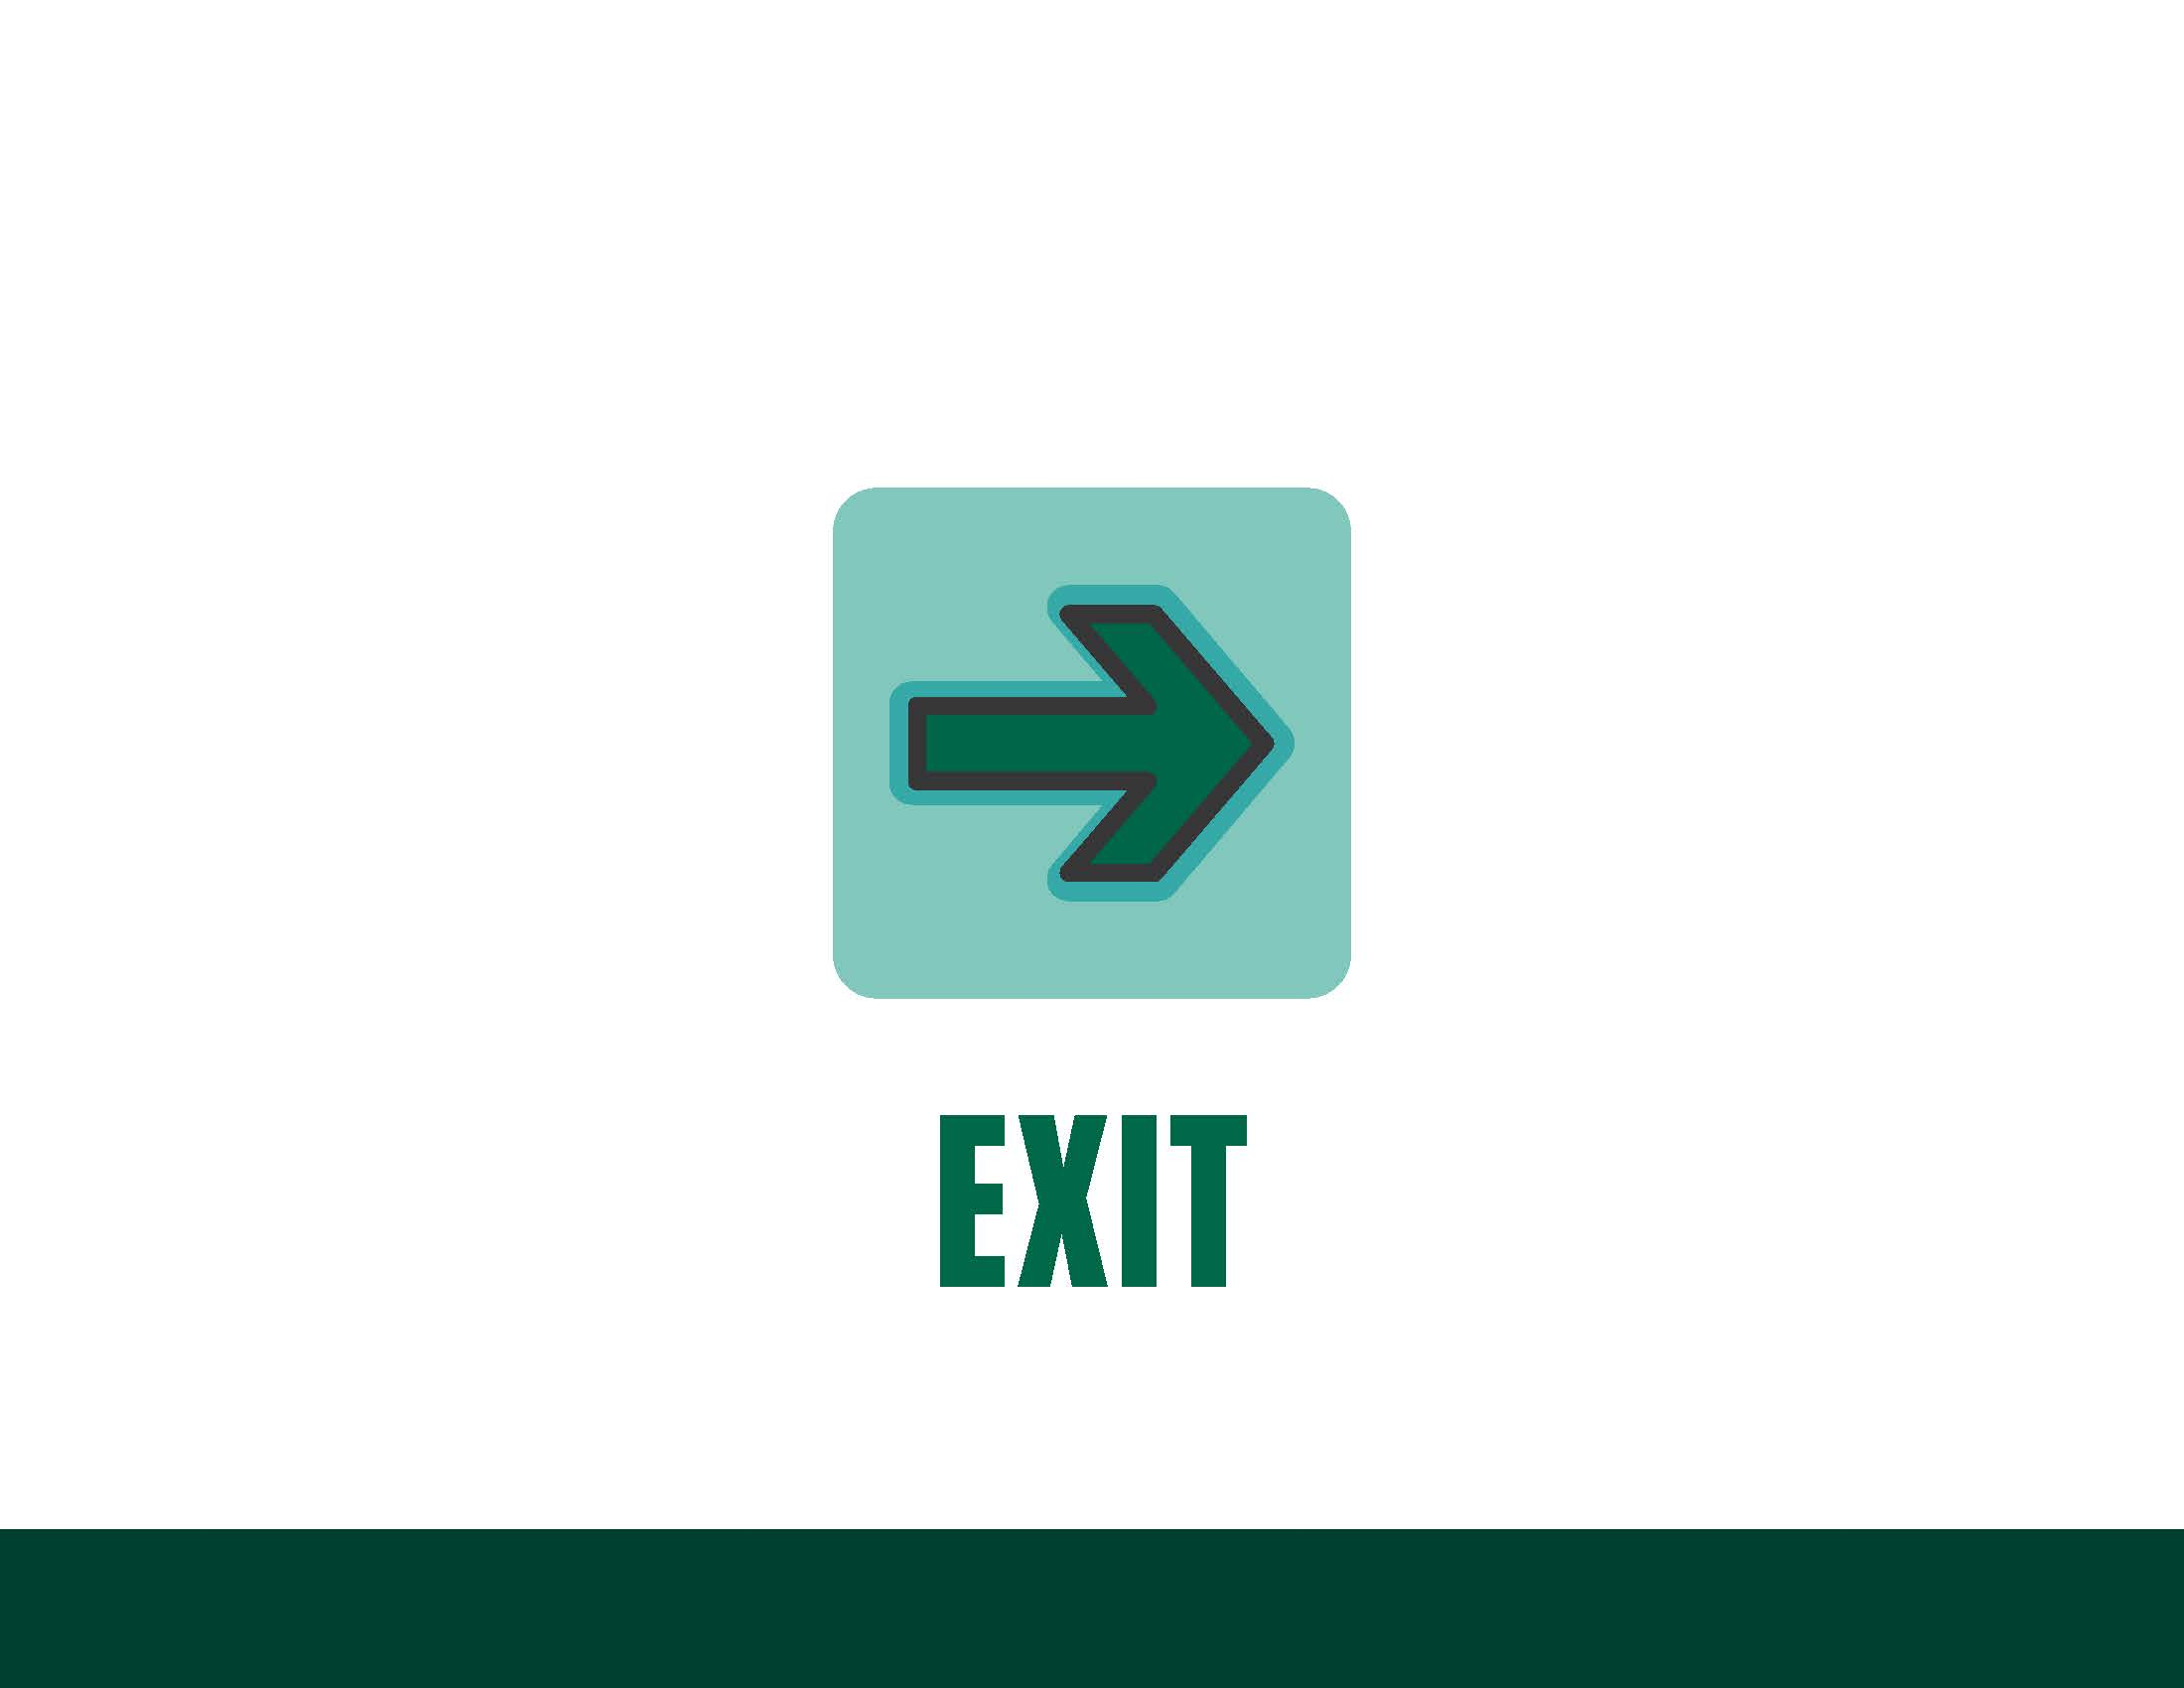 COVID sign - exit, right arrow